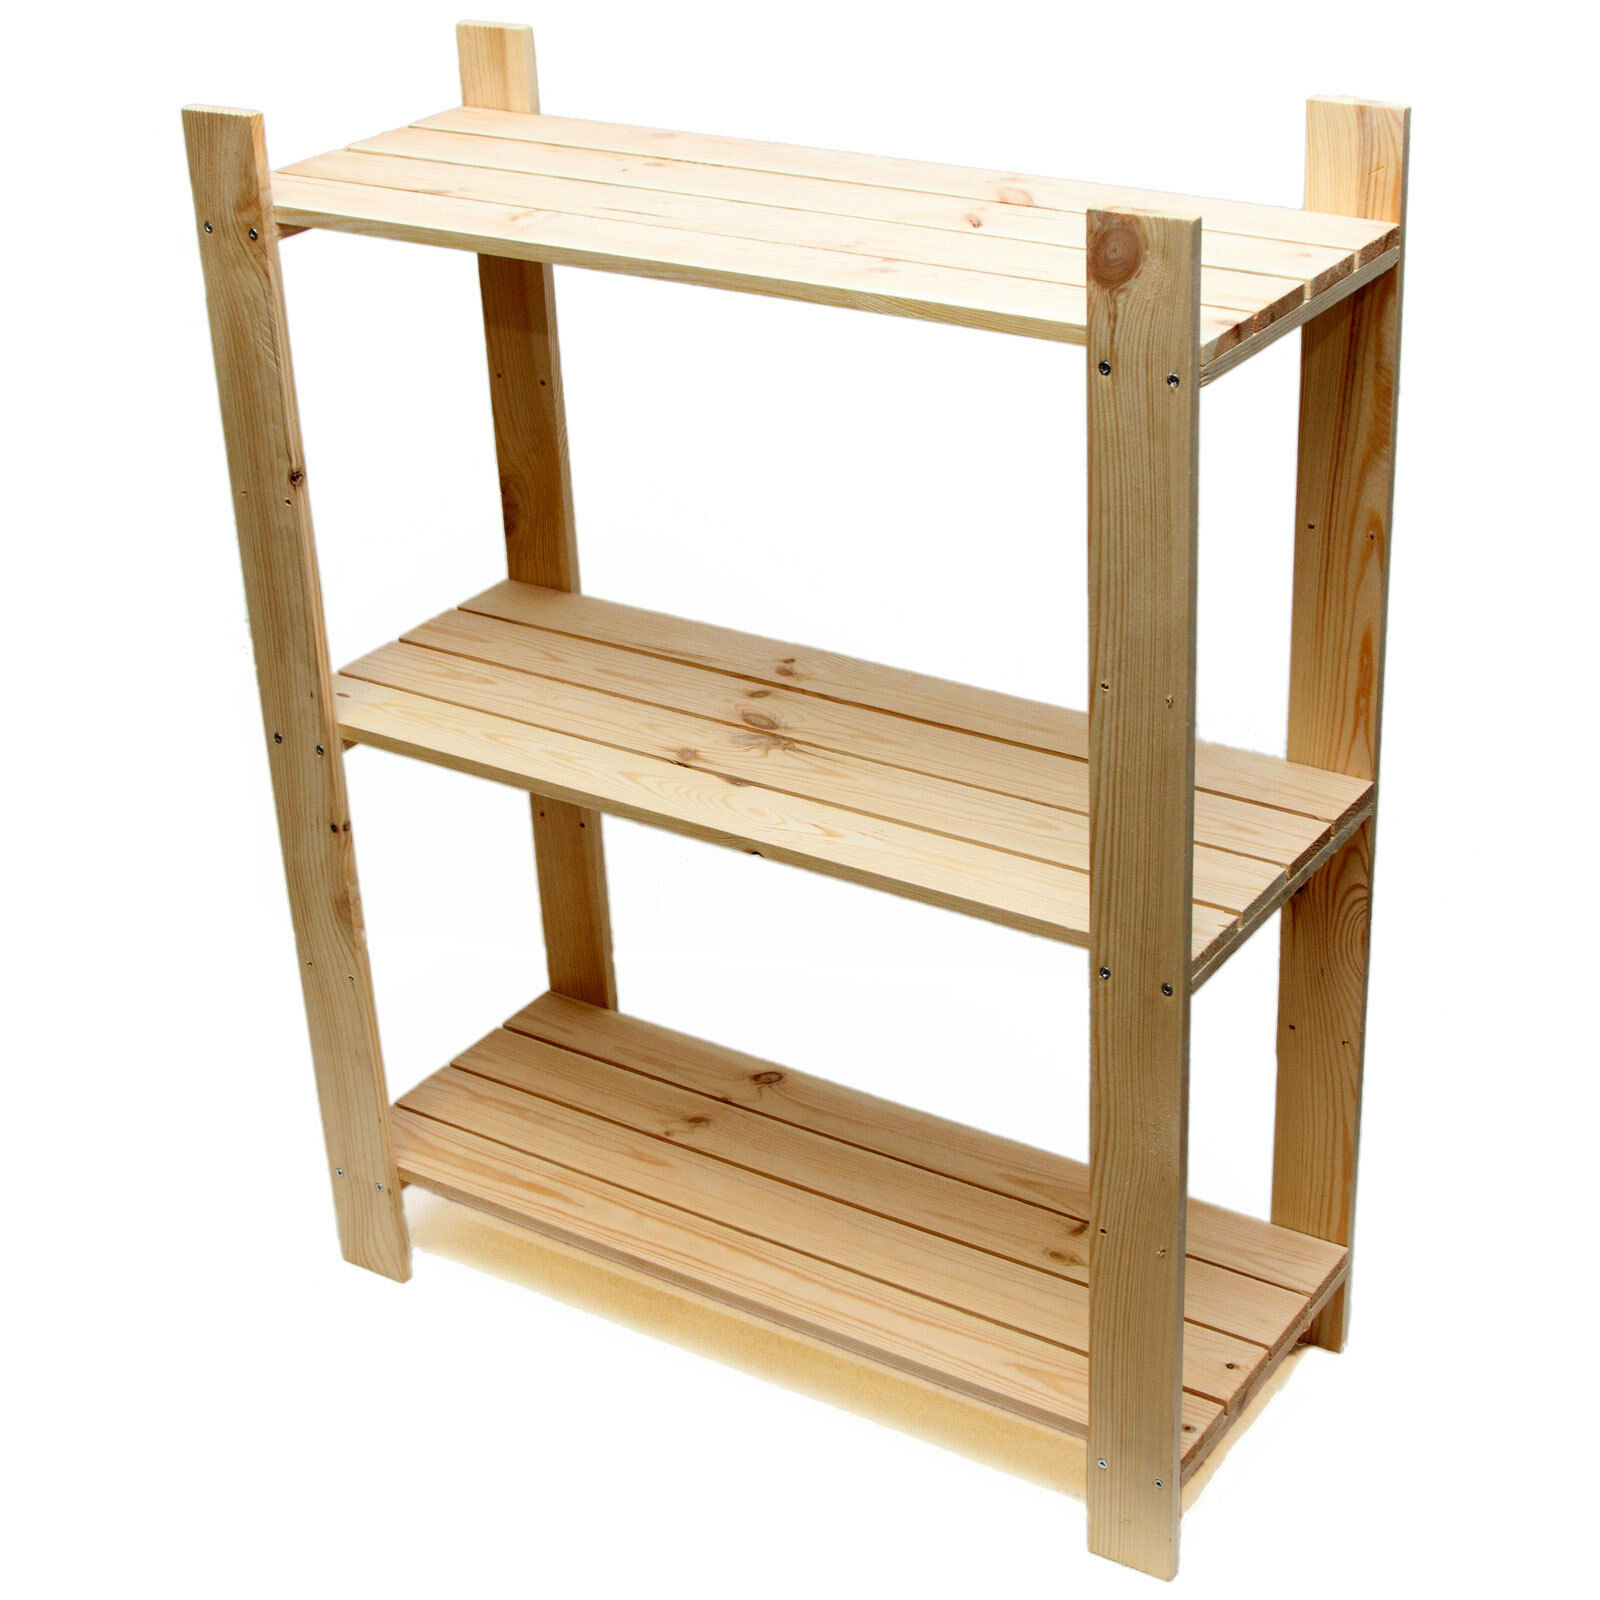 ... Shelf Unit - Pine Shelves with 3 Wooden Shelves - Freestanding Rack